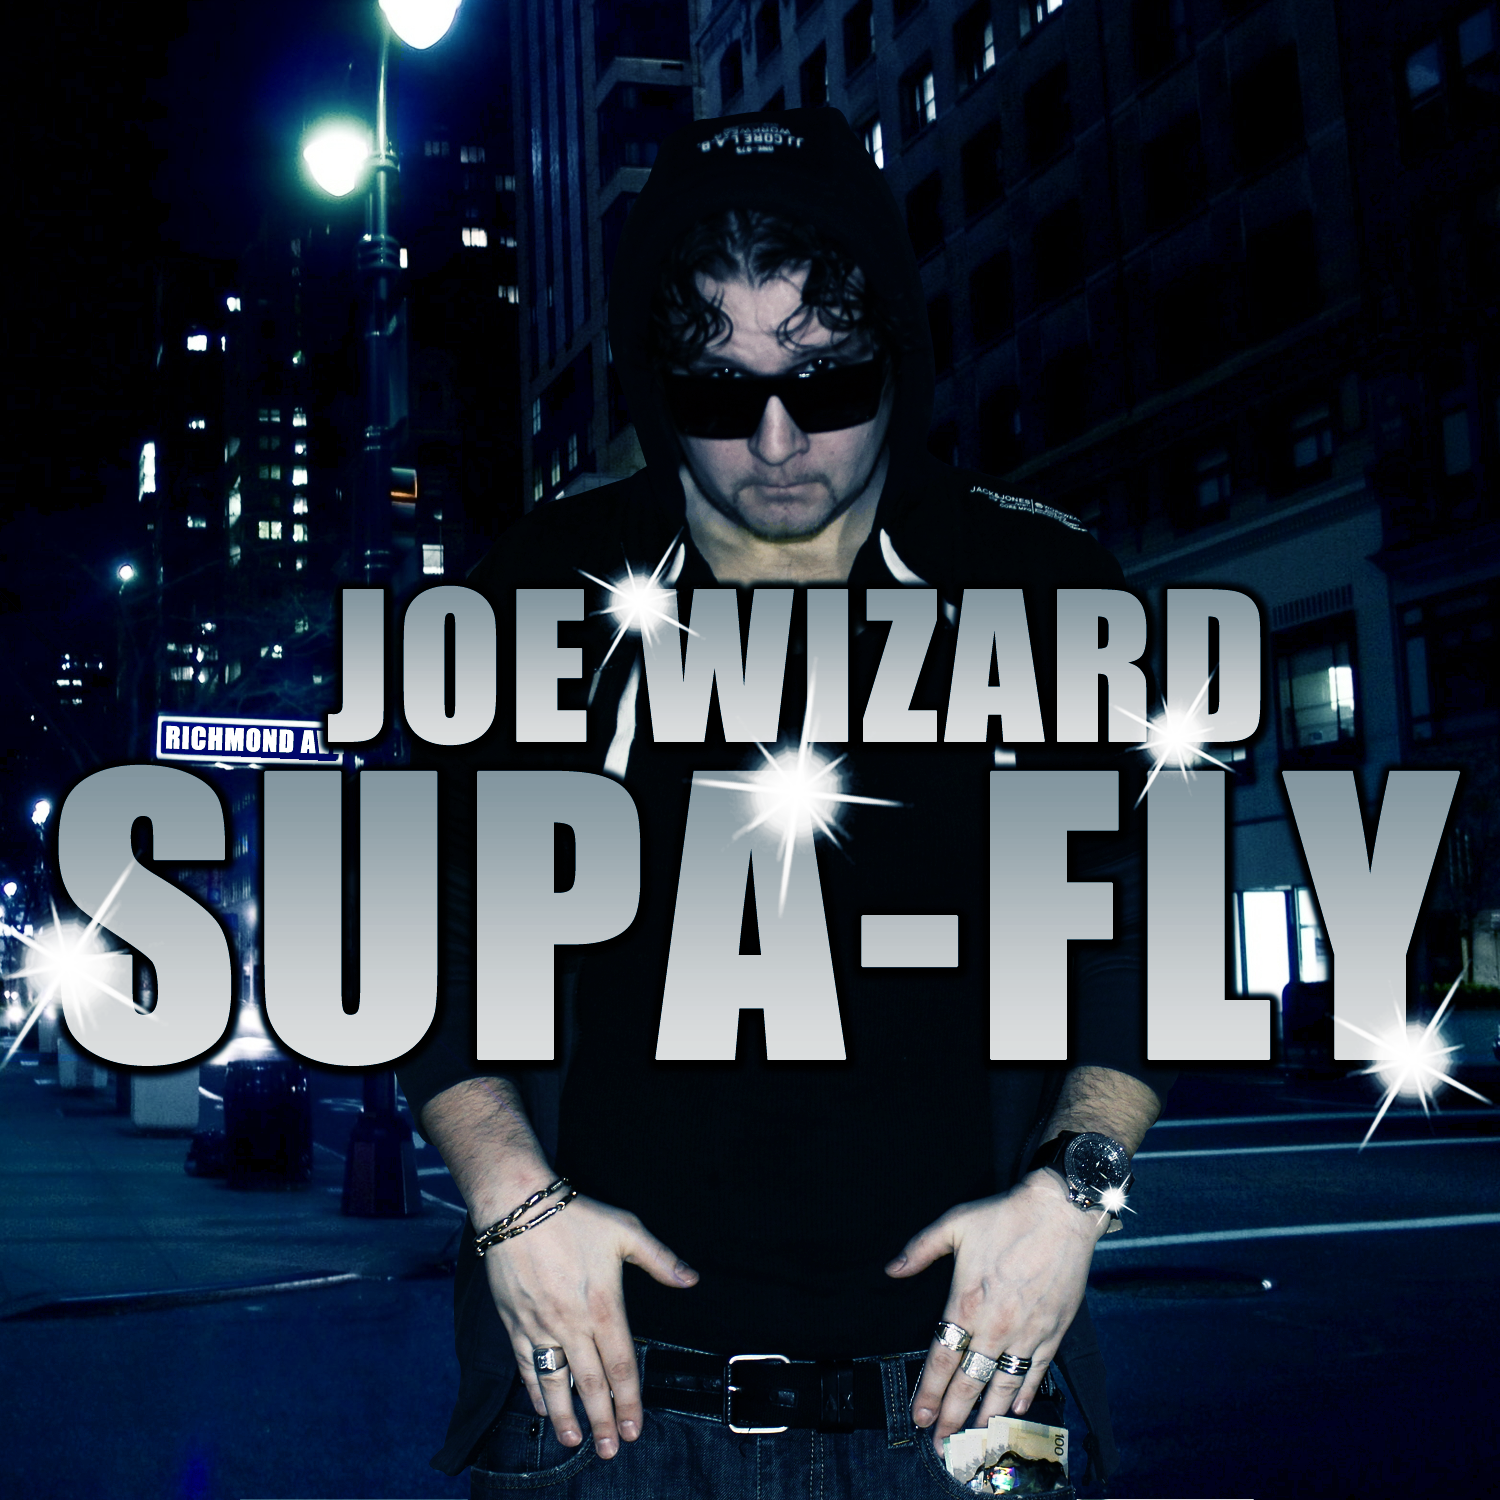 Joe Wizard Supa Fly cover art is Koe with his sun shades on like a cool cat